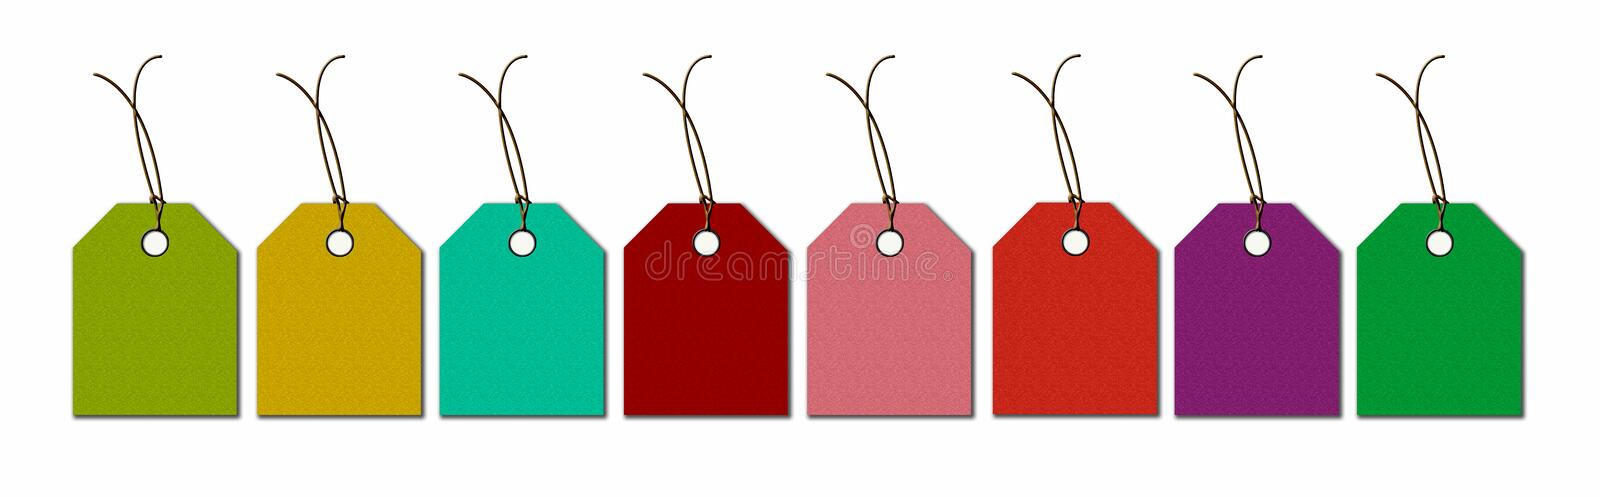 Labels in the new colors for sale bargains and discounts. Labels in the new colors for sale bargains and discounts vector illustration